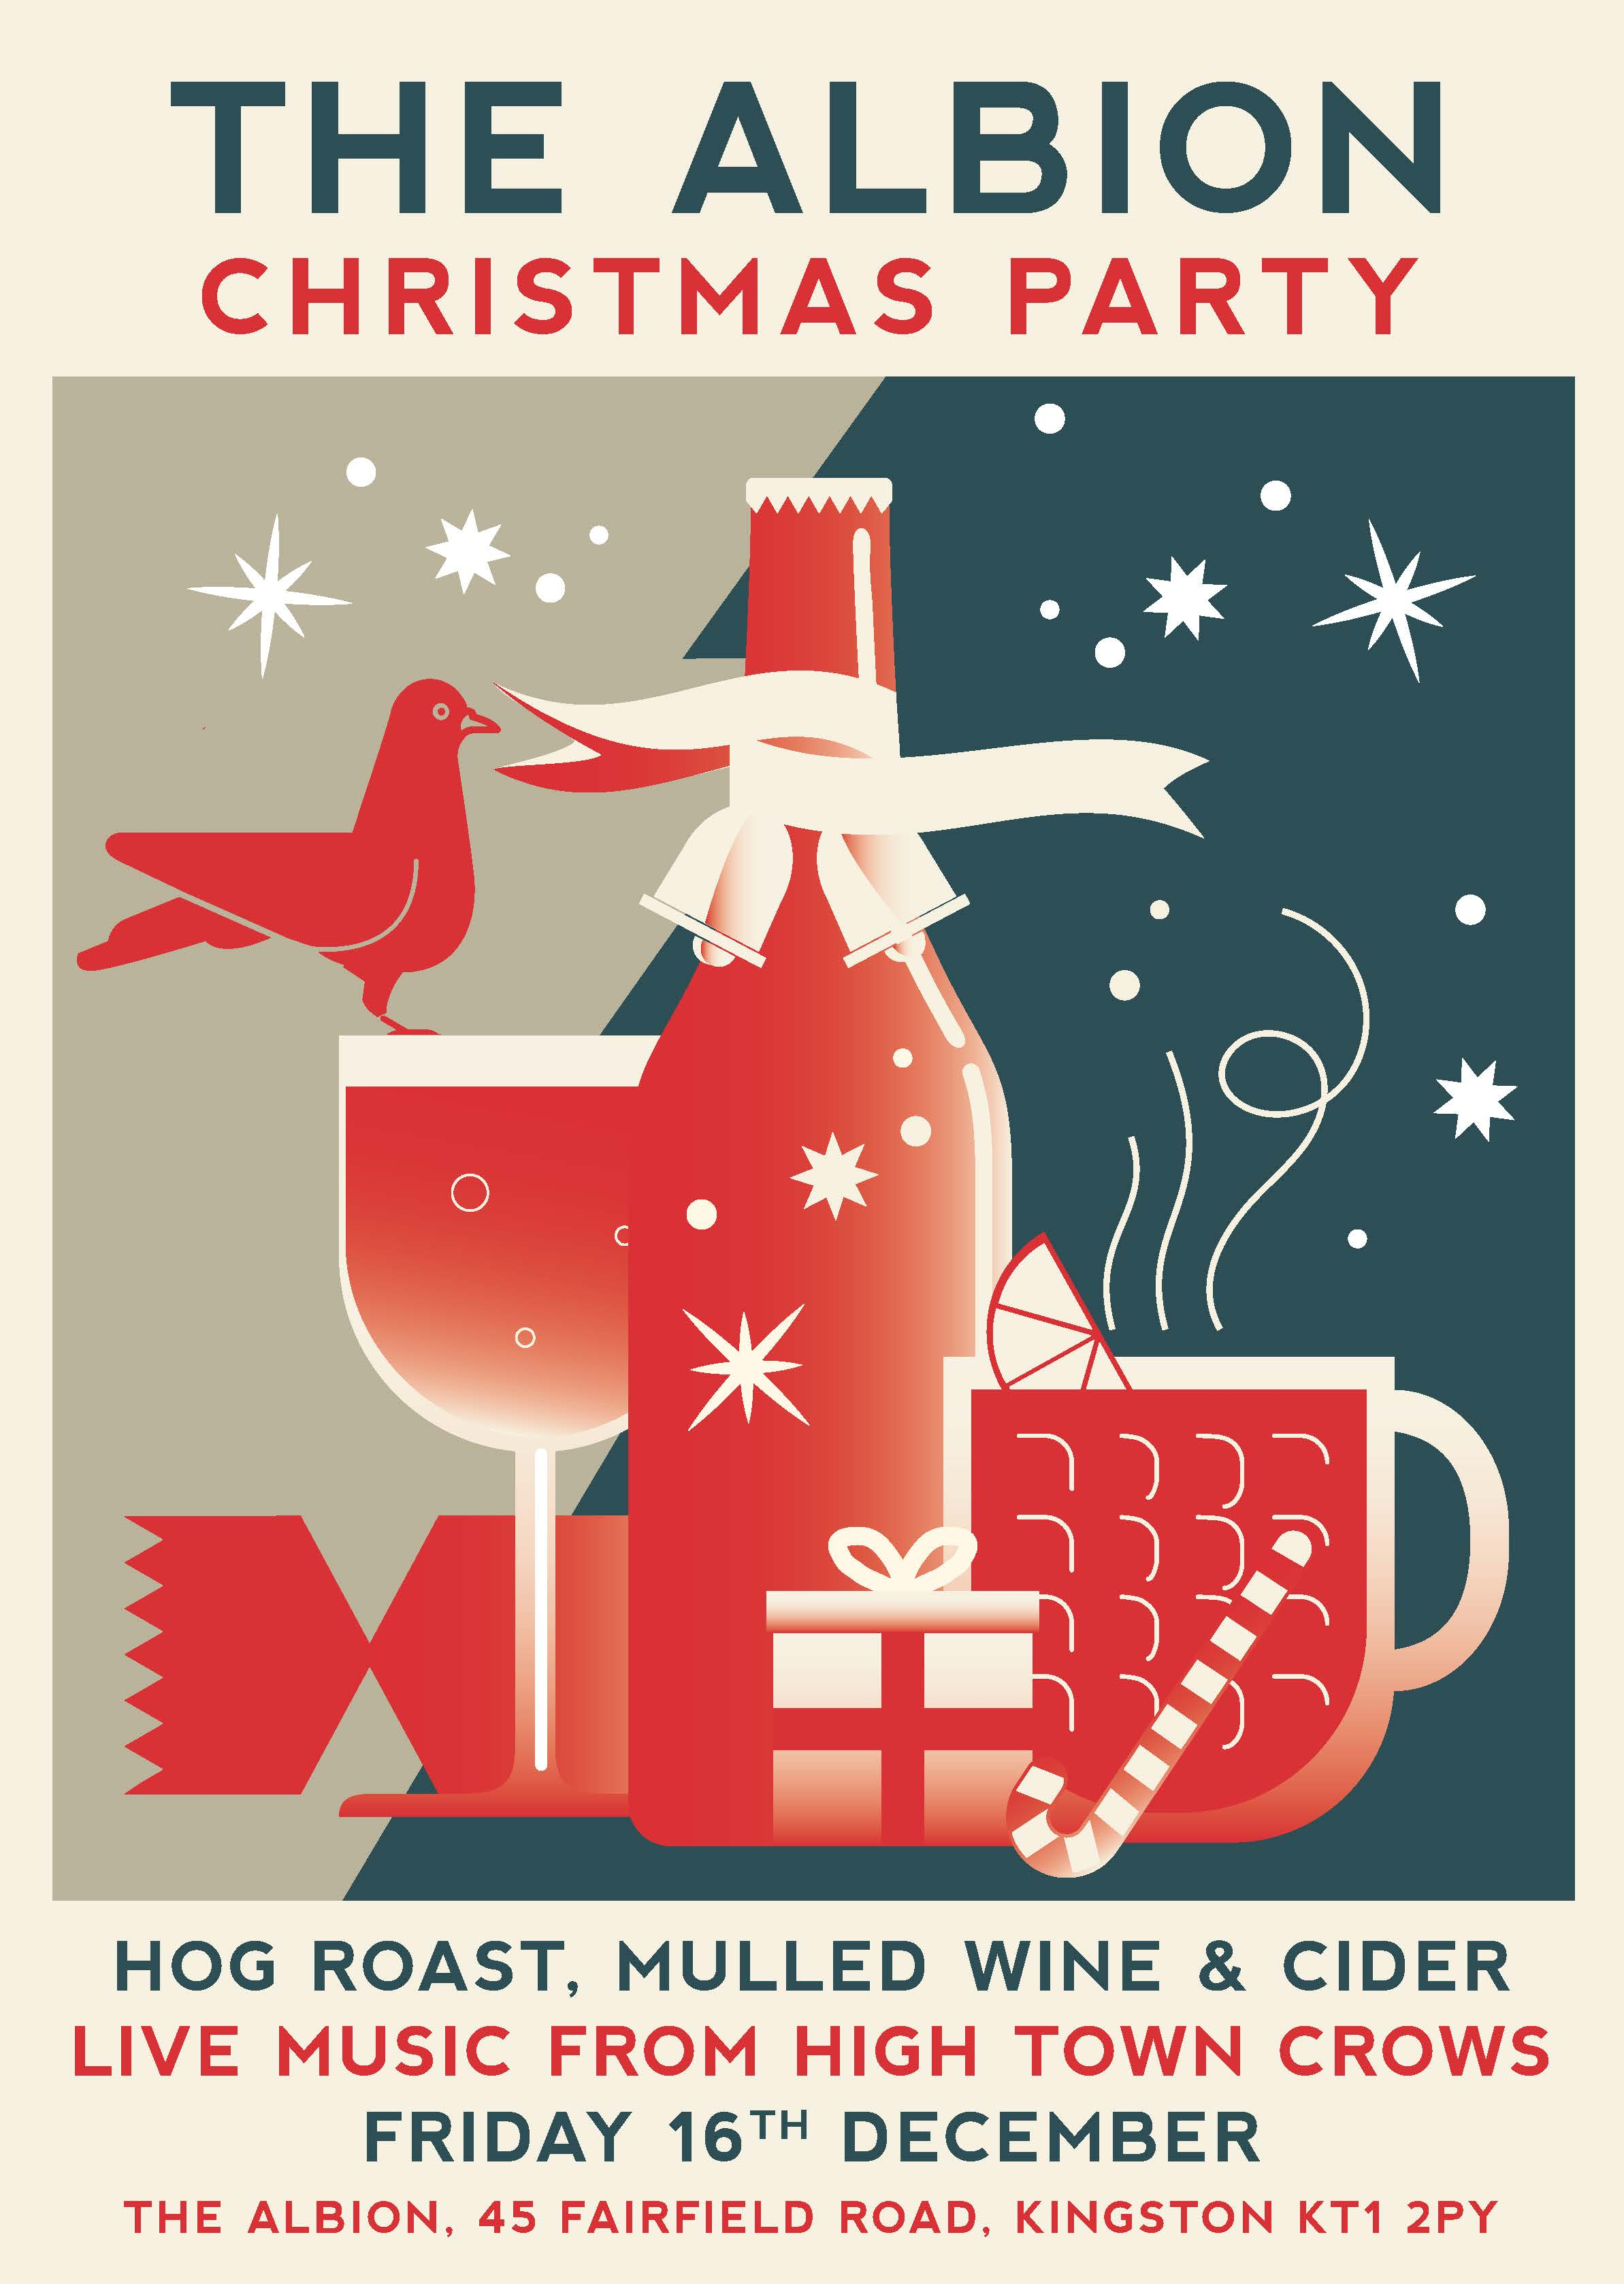 We're having a Christmas Knees Up and you're invited! Live music, hog roast in the garden and lots of Crimbo cheer. Come along and help us celebrate the most wonderful time of the year (apart from summer, which is clearly better).